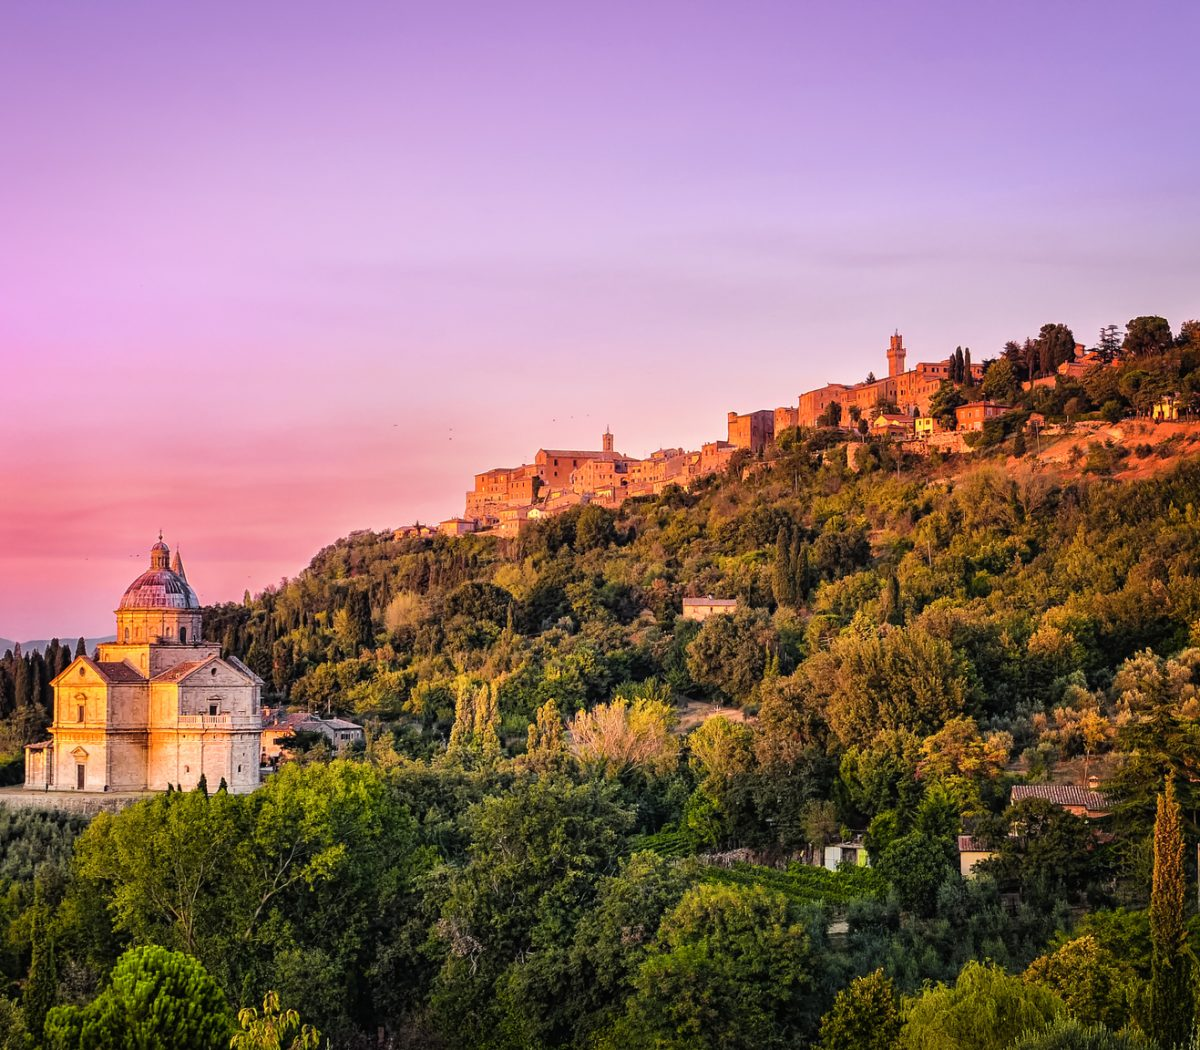 San Biagio cathedral at colorful sunset